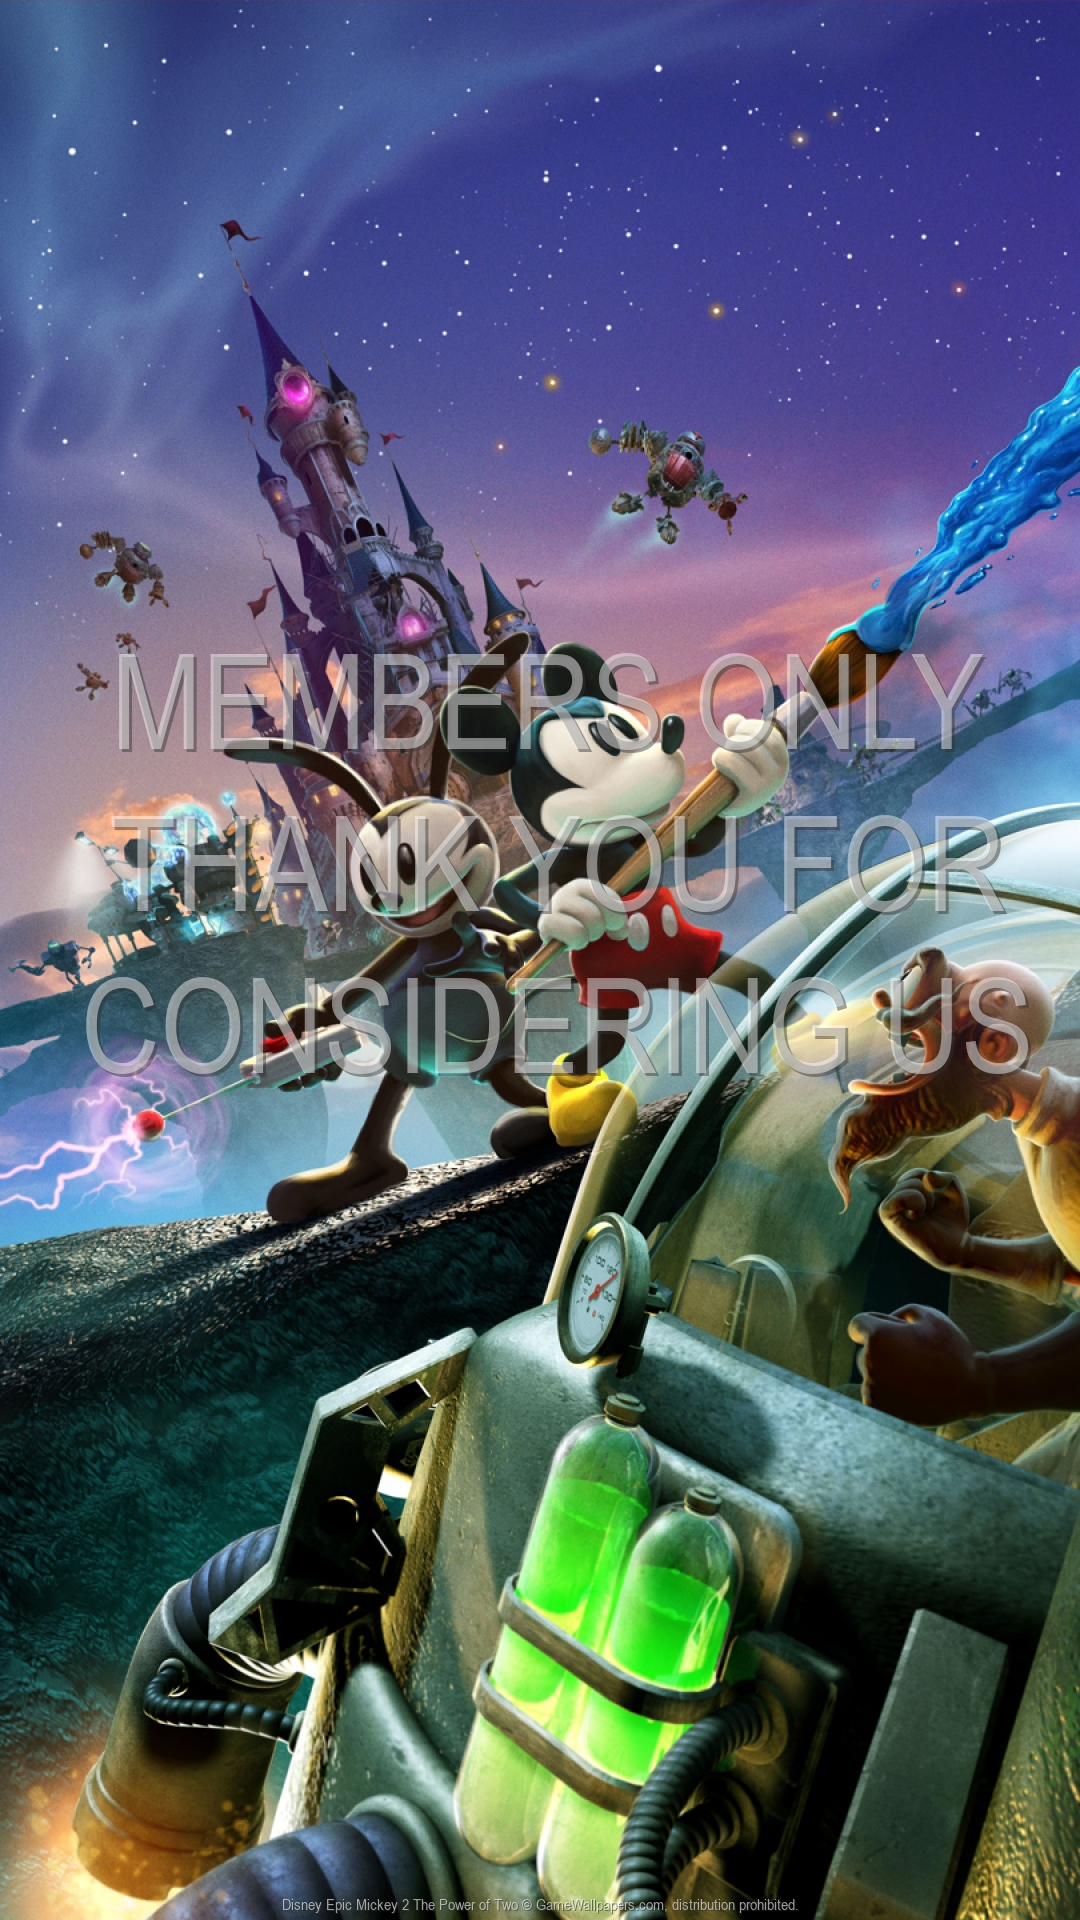 Disney Epic Mickey 2 The Power Of Two 1920x1080 Mobile Wallpaper Or Background 01